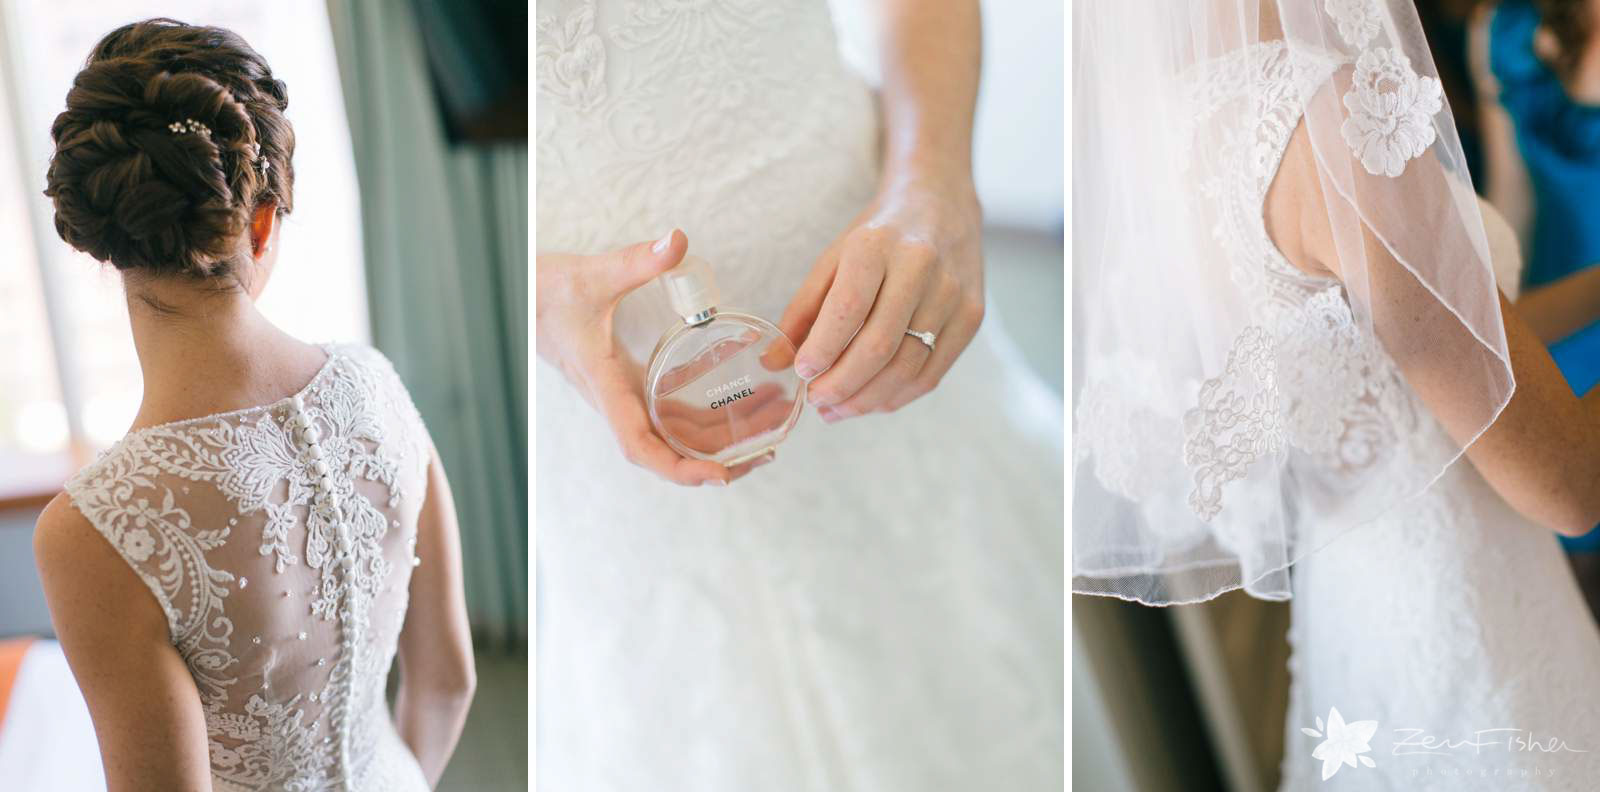 Detail of lace on bride's dress, bride holding perfume bottle, lace on bride's veil